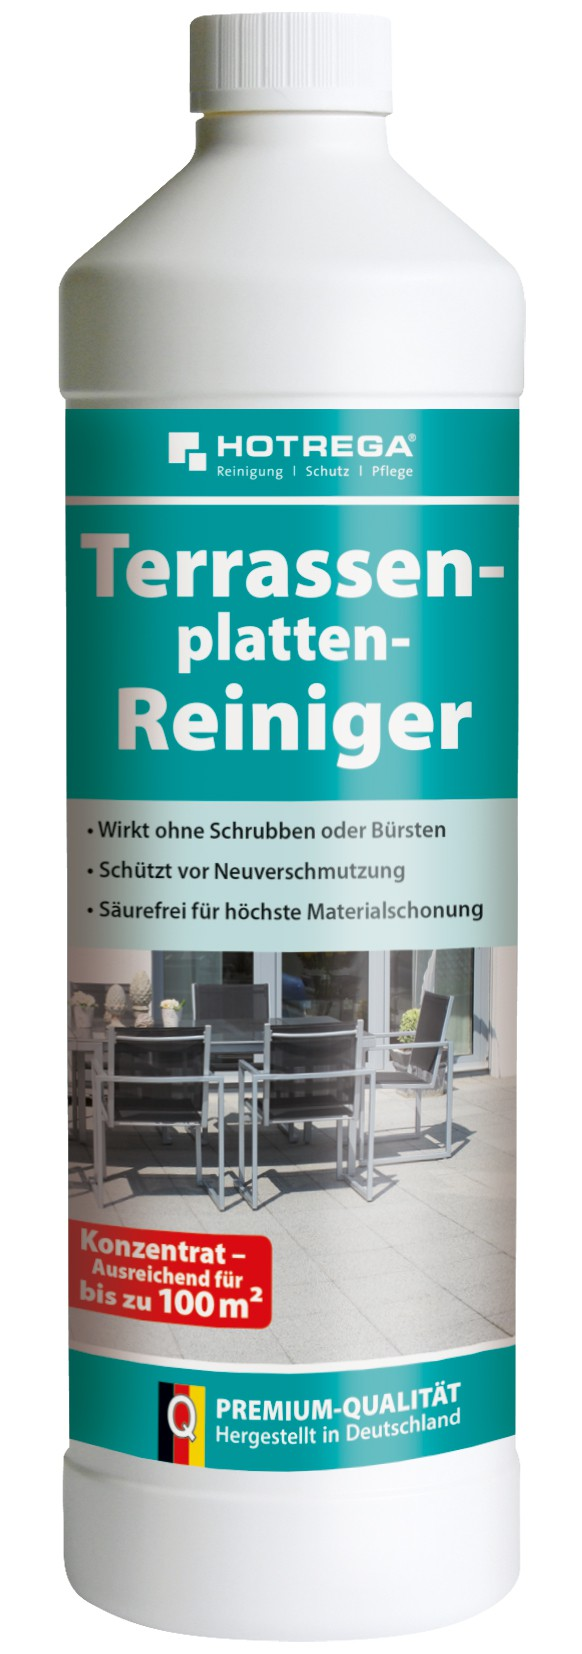 hotrega terrassenplatten reiniger 1000 ml flasche online kaufen. Black Bedroom Furniture Sets. Home Design Ideas